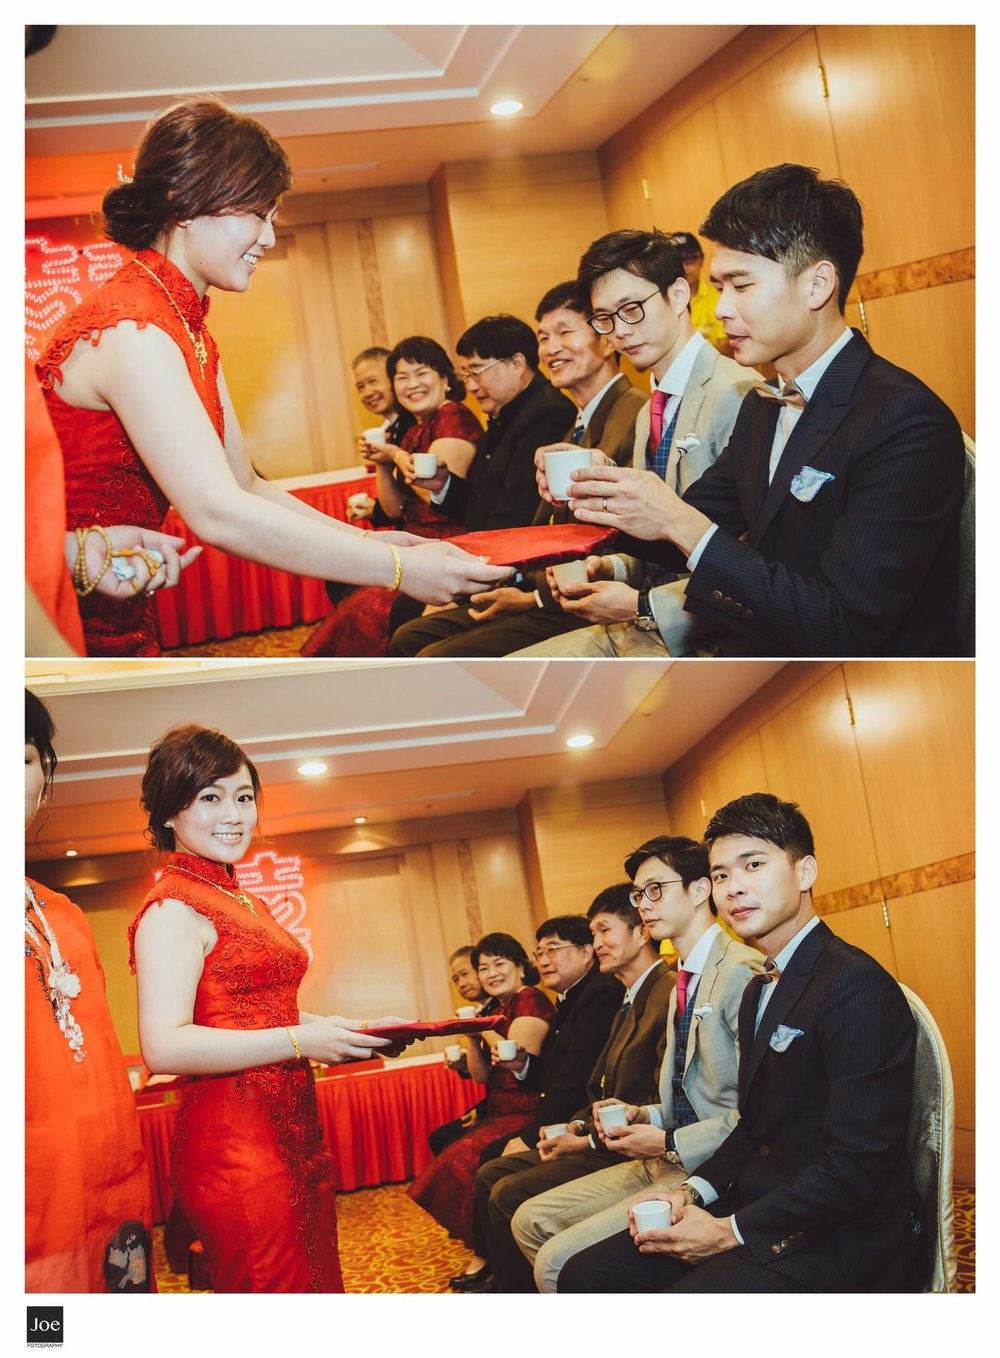 sunworld-dynasty-hotel-taipei-wedding-photo-joe-fotography-angel-jay-014.jpg